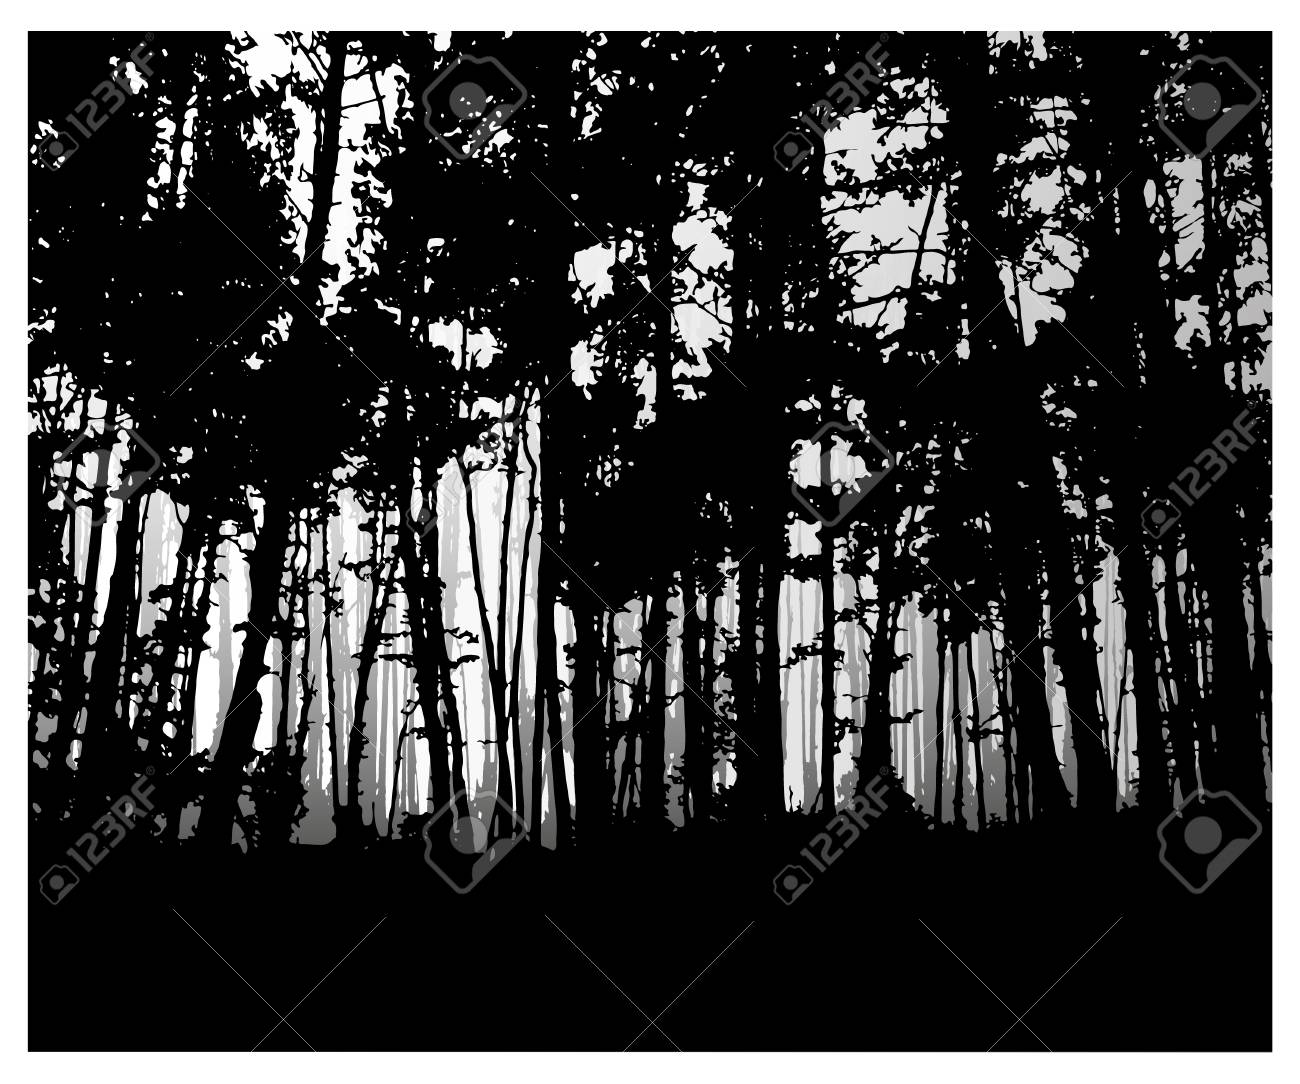 Stock photo woodland eco banner classic black and white tones can be used as poster badge wallpaper backdrop background